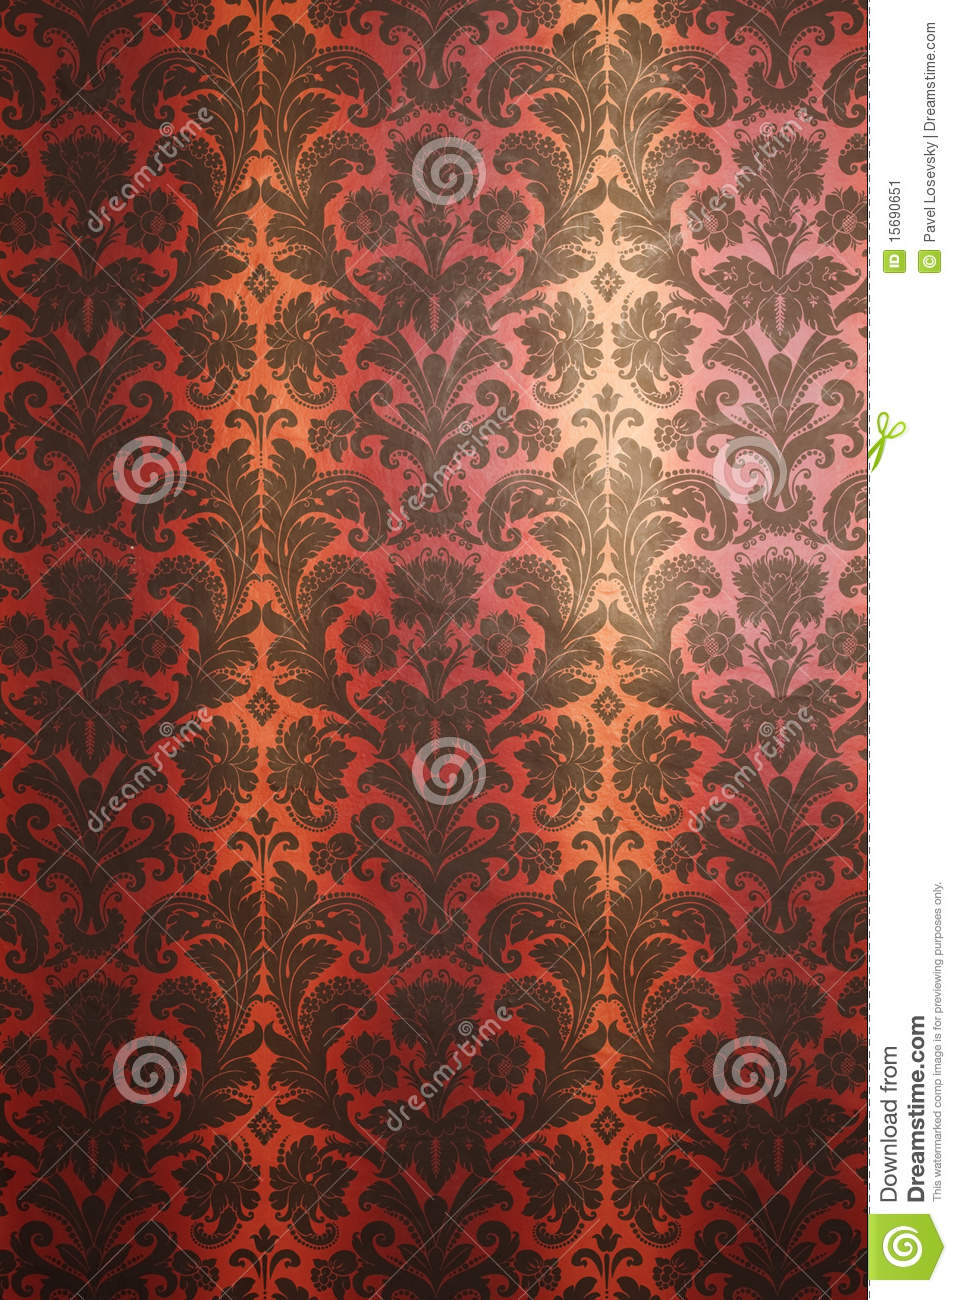 Red And Yellow With Black Pattern Wallpaper Stock Illustration